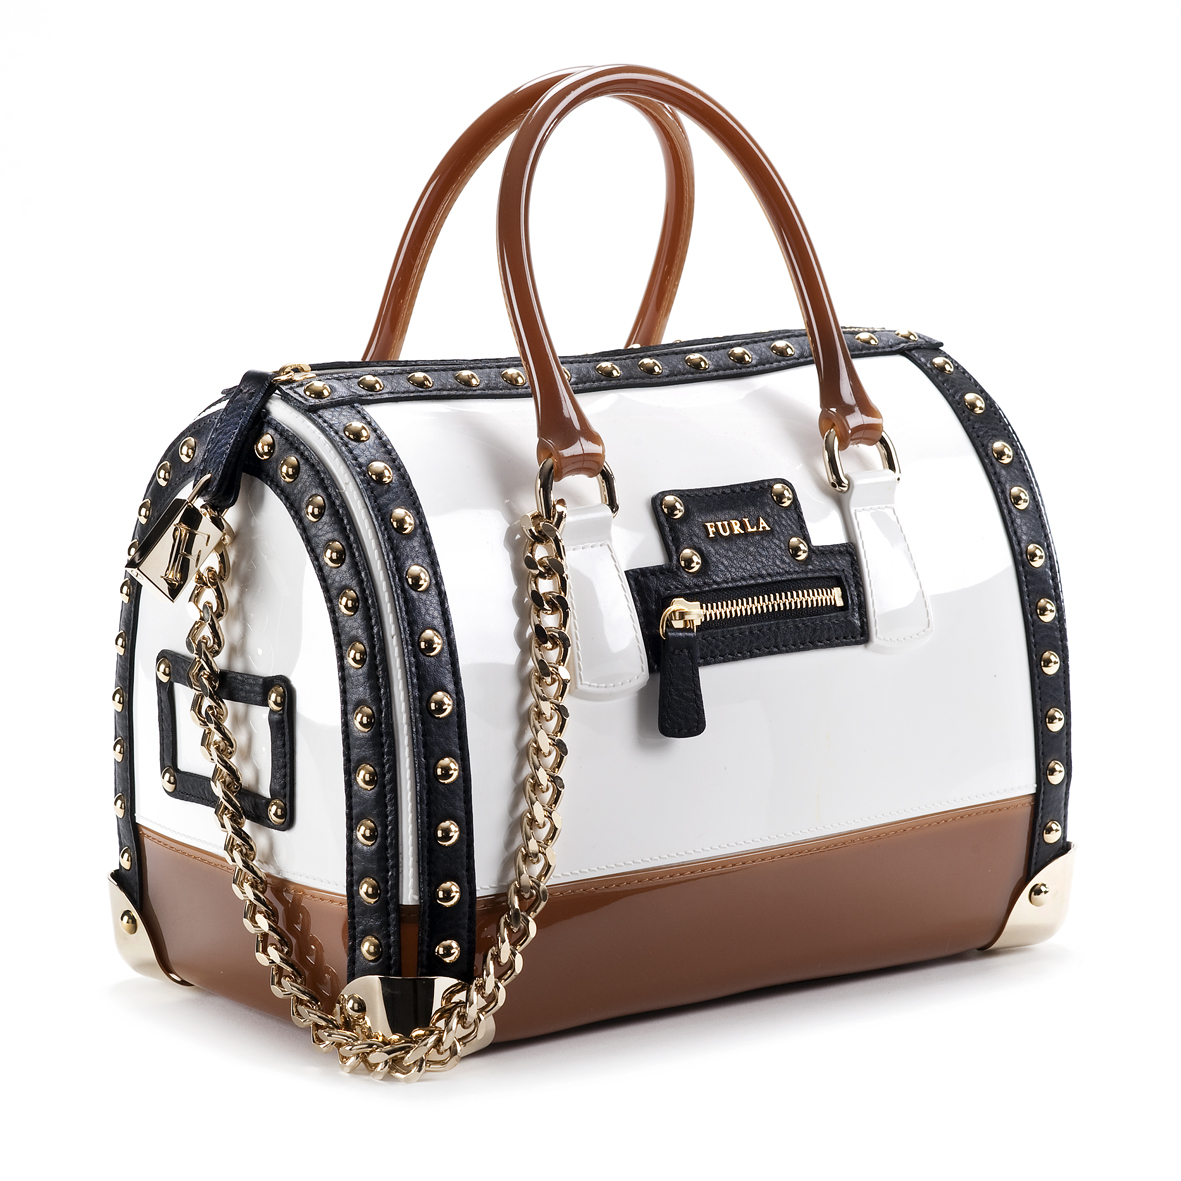 Handbag - Crystal Cross & Crisscross Pattern W/Single Strap - LRG - Turq (OP)